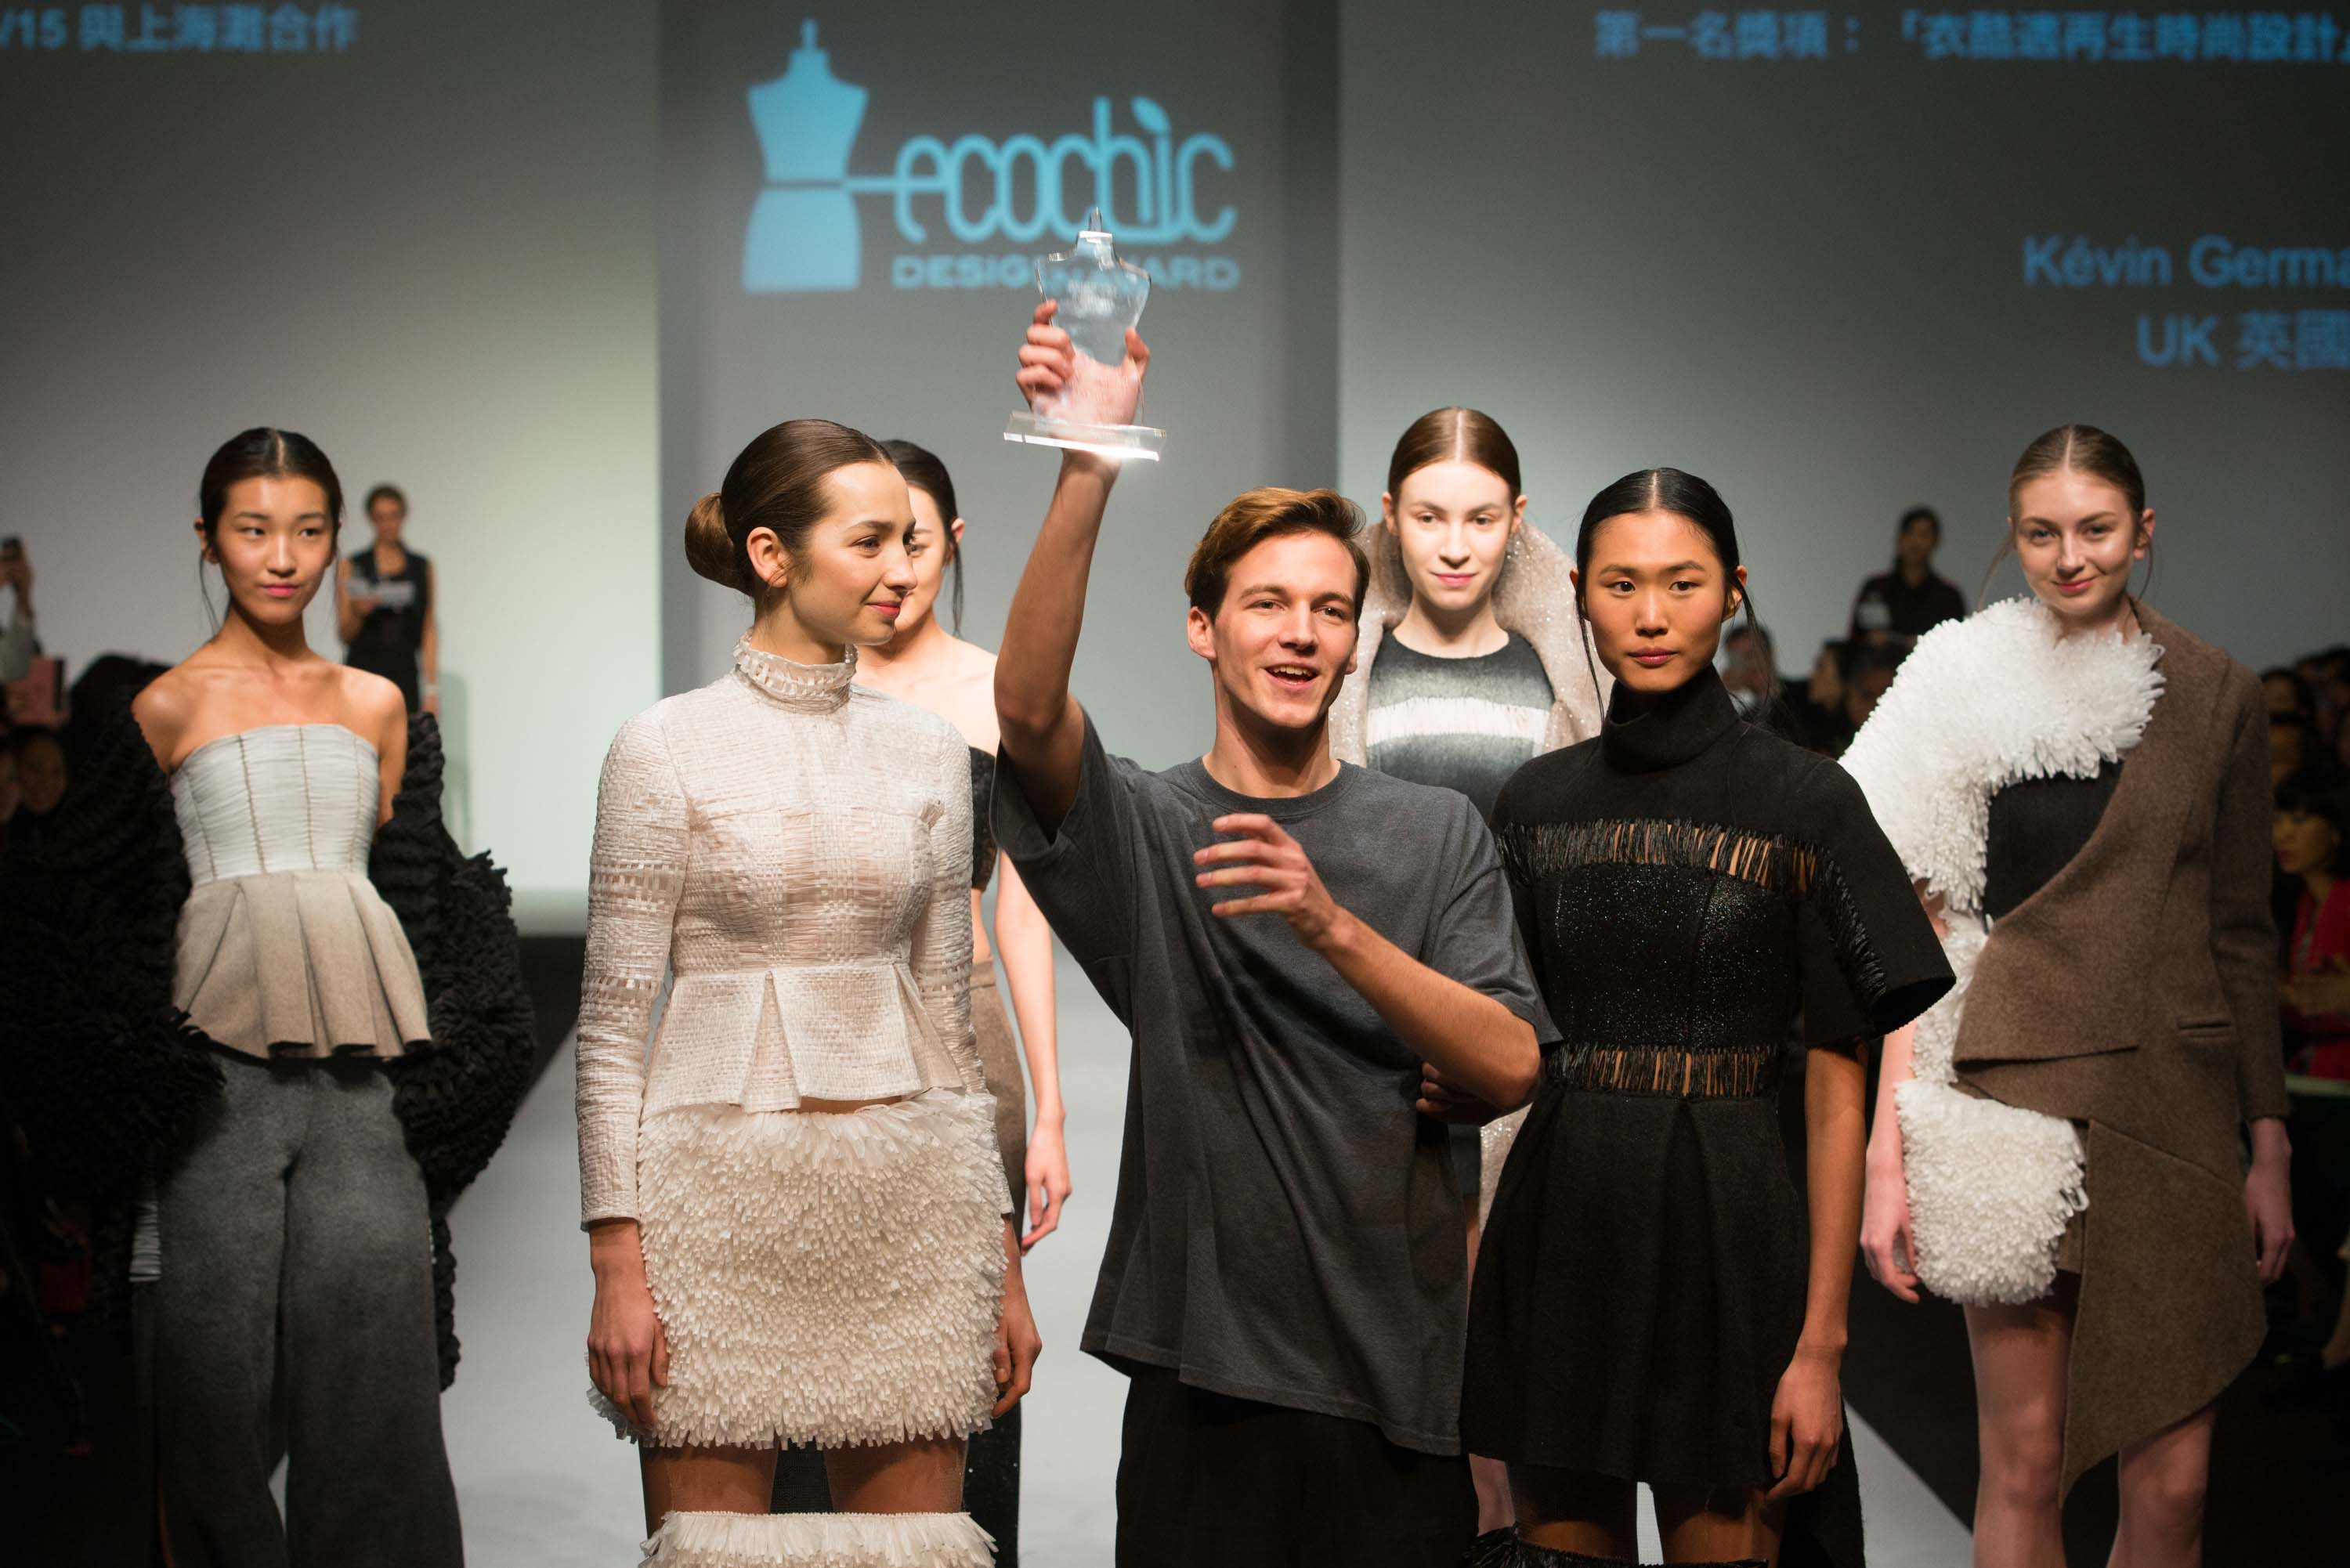 The EcoChic Design Award 2014/15 winner Kevin Germanier